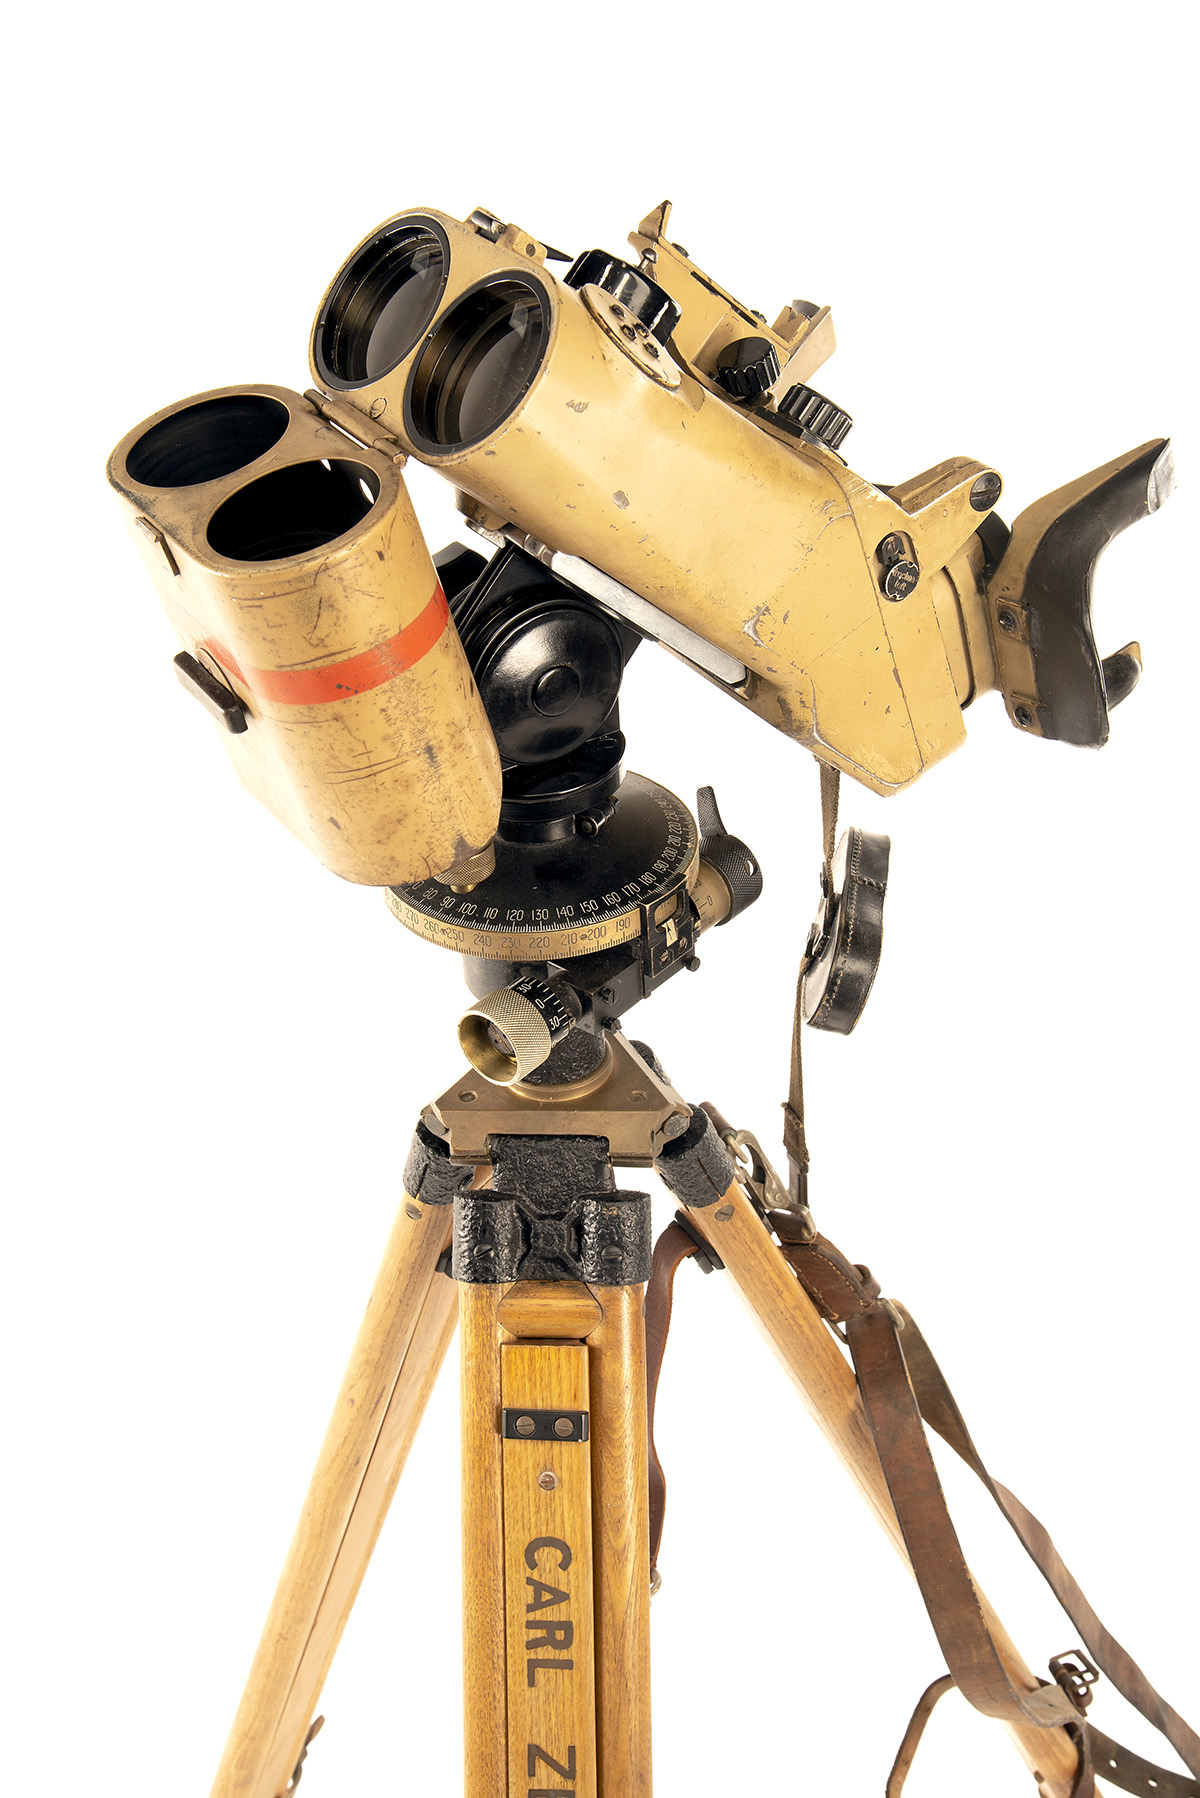 CARL ZEISS, JENA A RARE PAIR OF 12x60 INCLINED FLAK RANGING BINOCULARS WITH TRIPOD, serial no. - Image 6 of 7